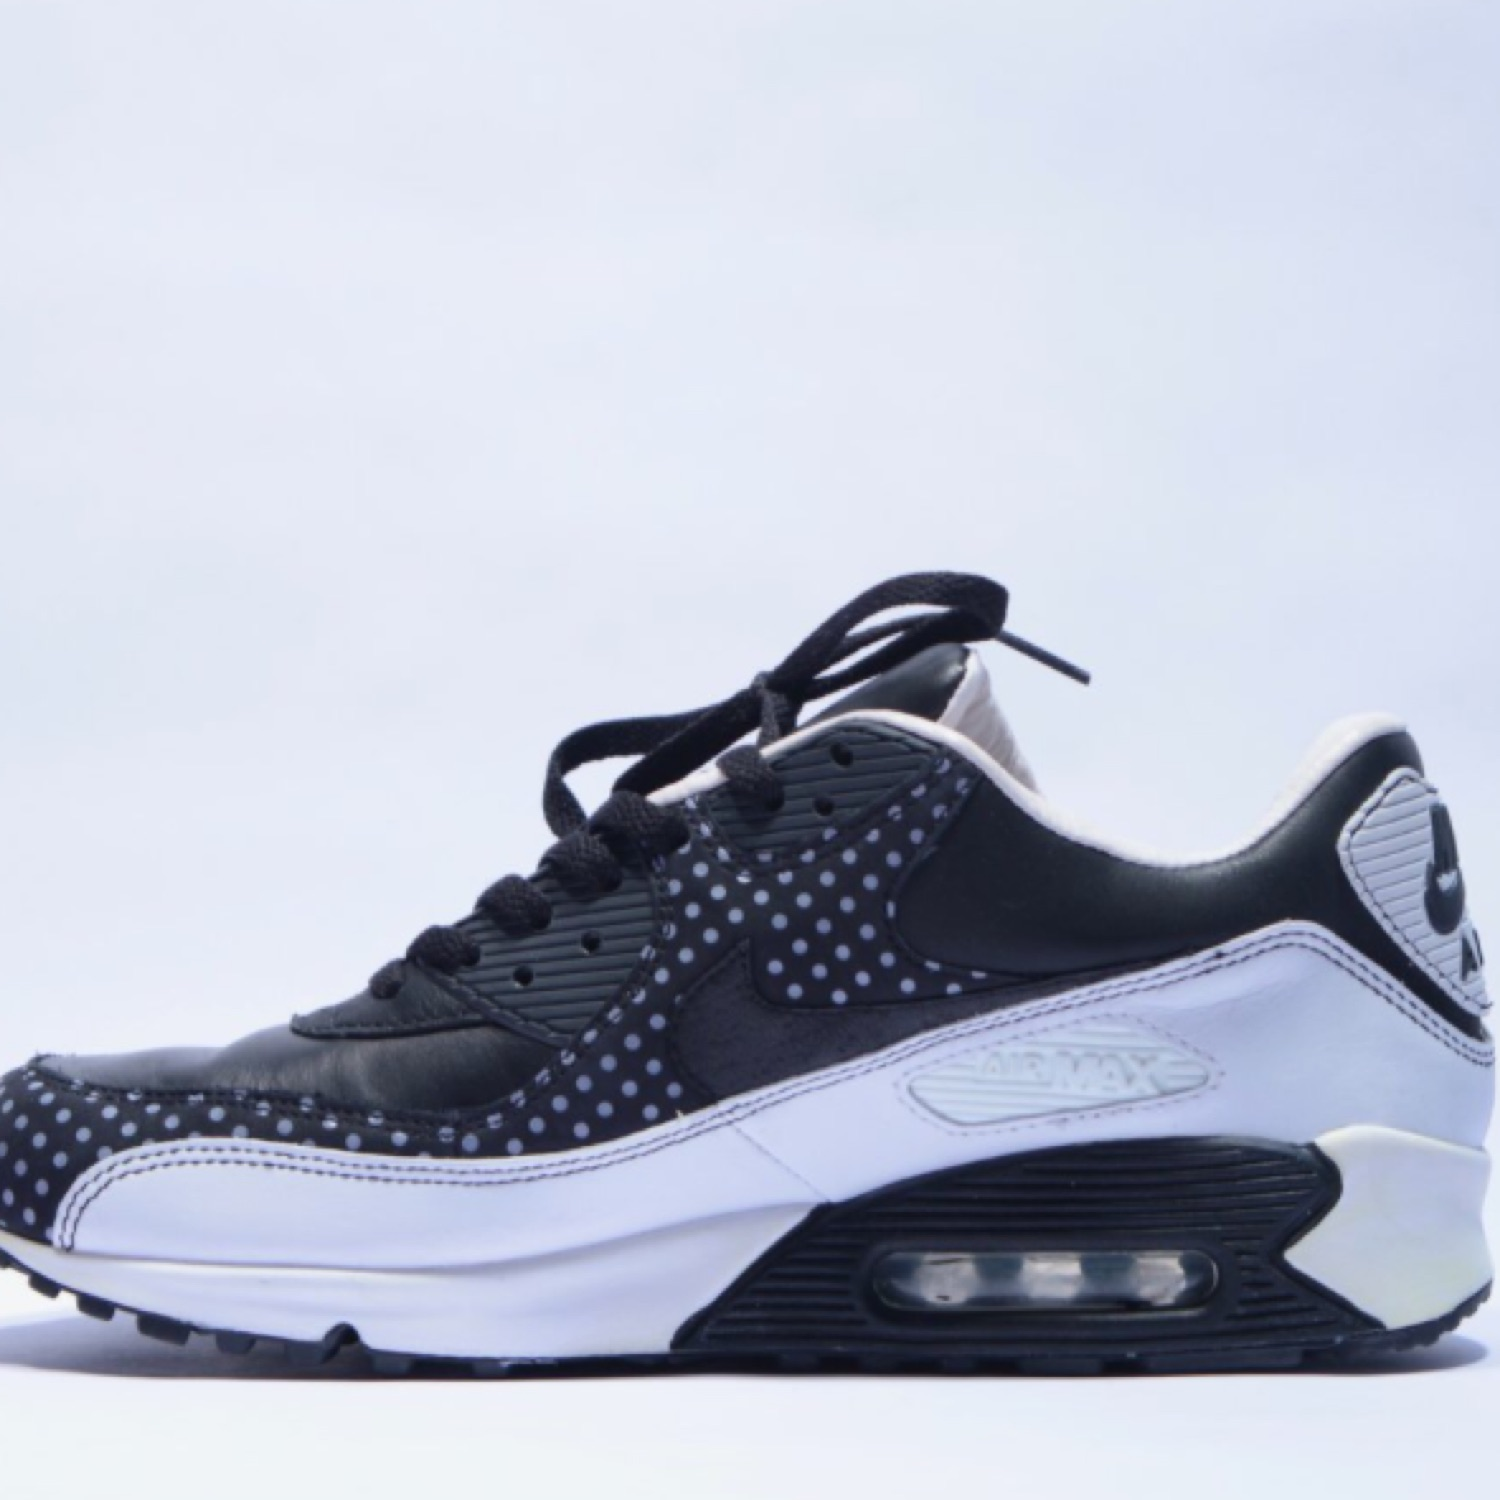 catch no sale tax 50% off Nike Air Max 90 X Foot Patrol